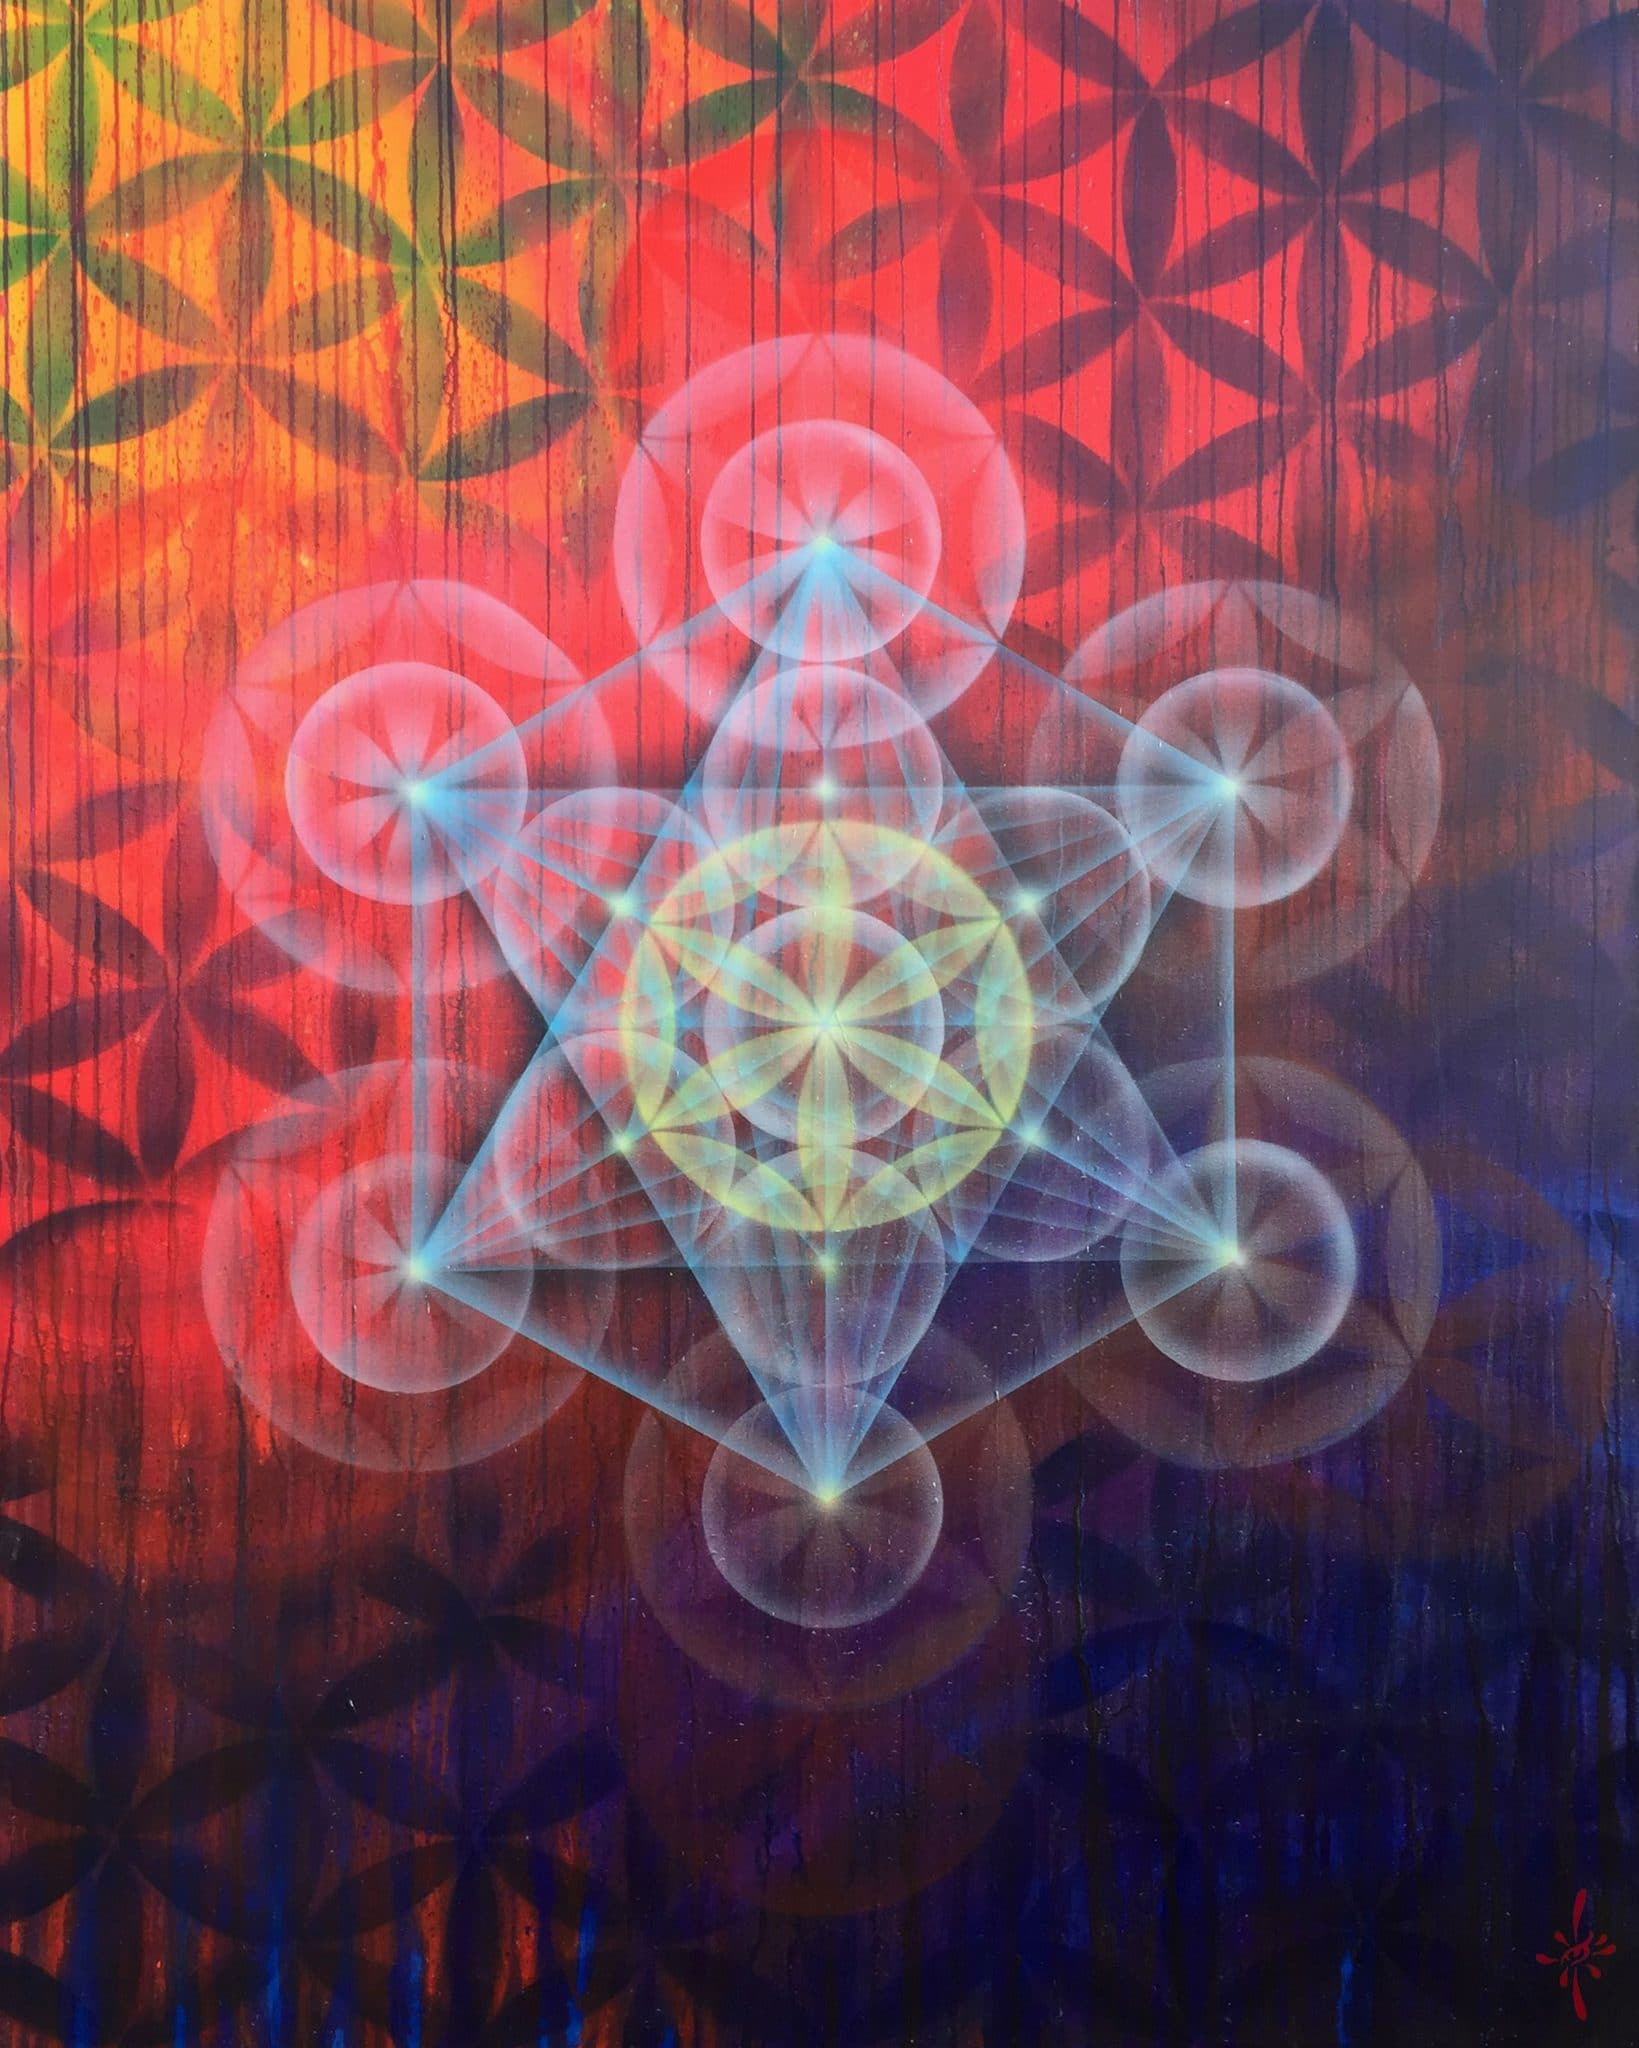 Metatrons Cube Red Flower of life by Drew Brophy 60x48 mixed media on canvas 2015